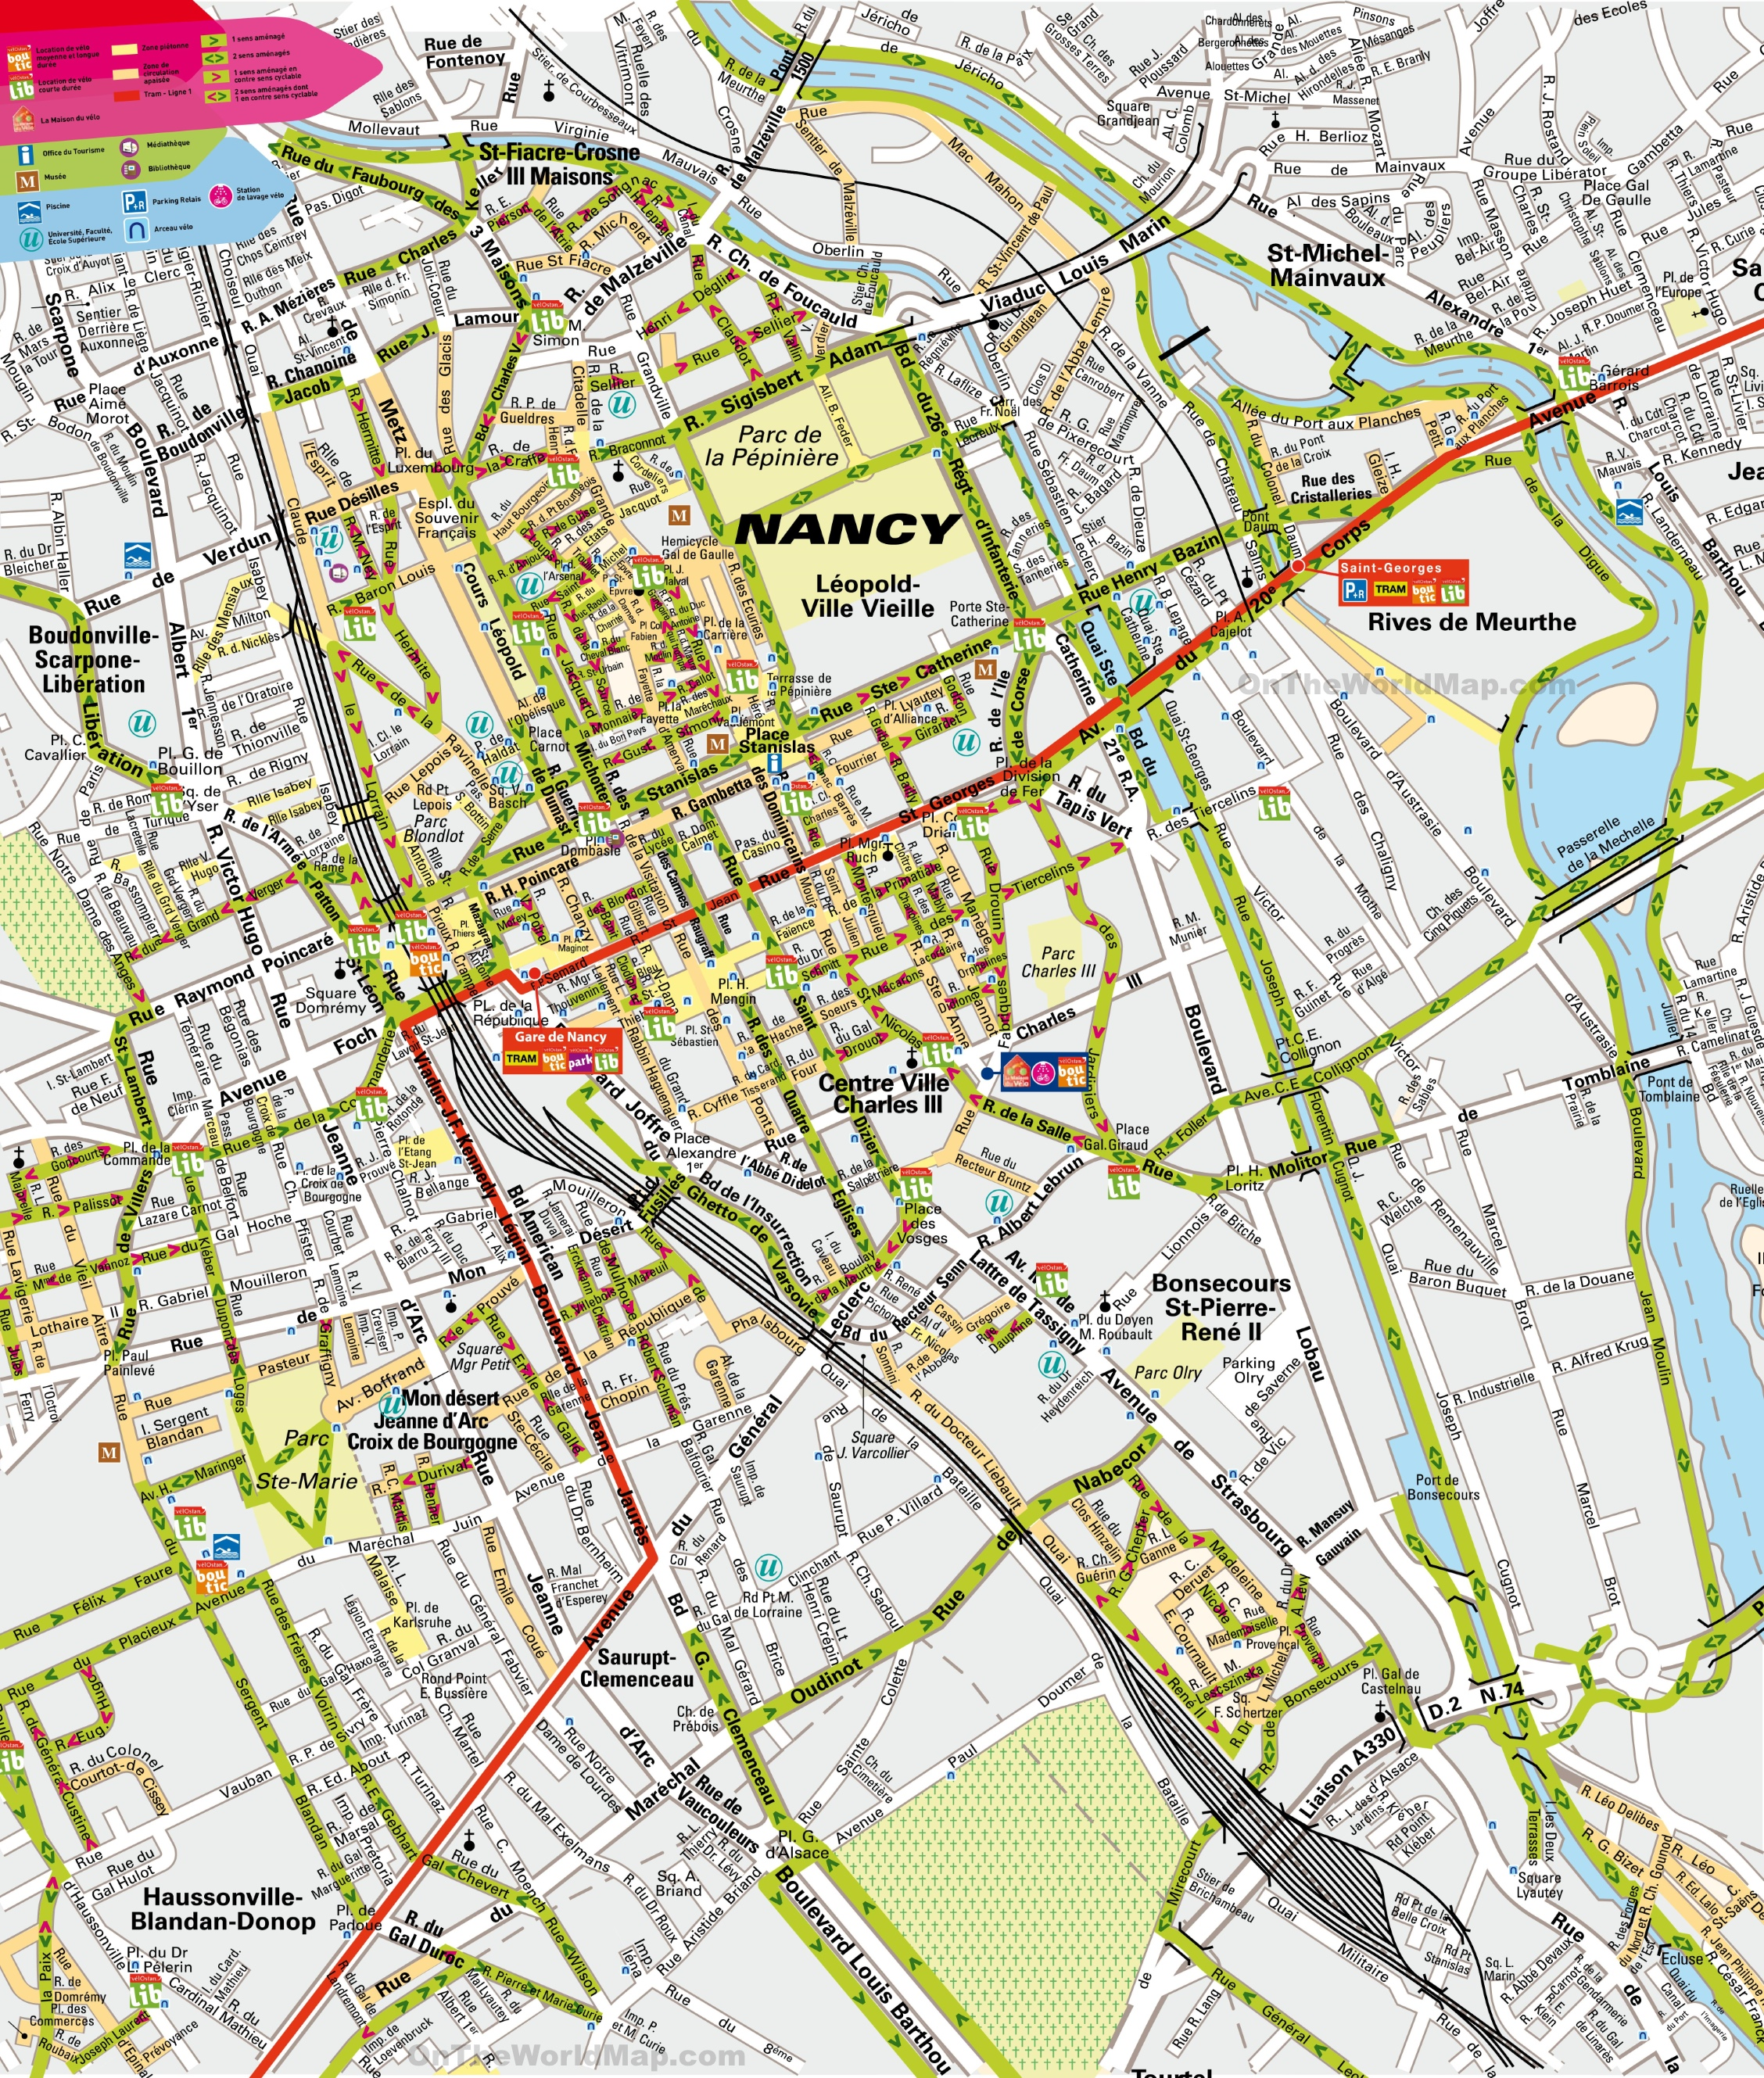 Nancy city center map